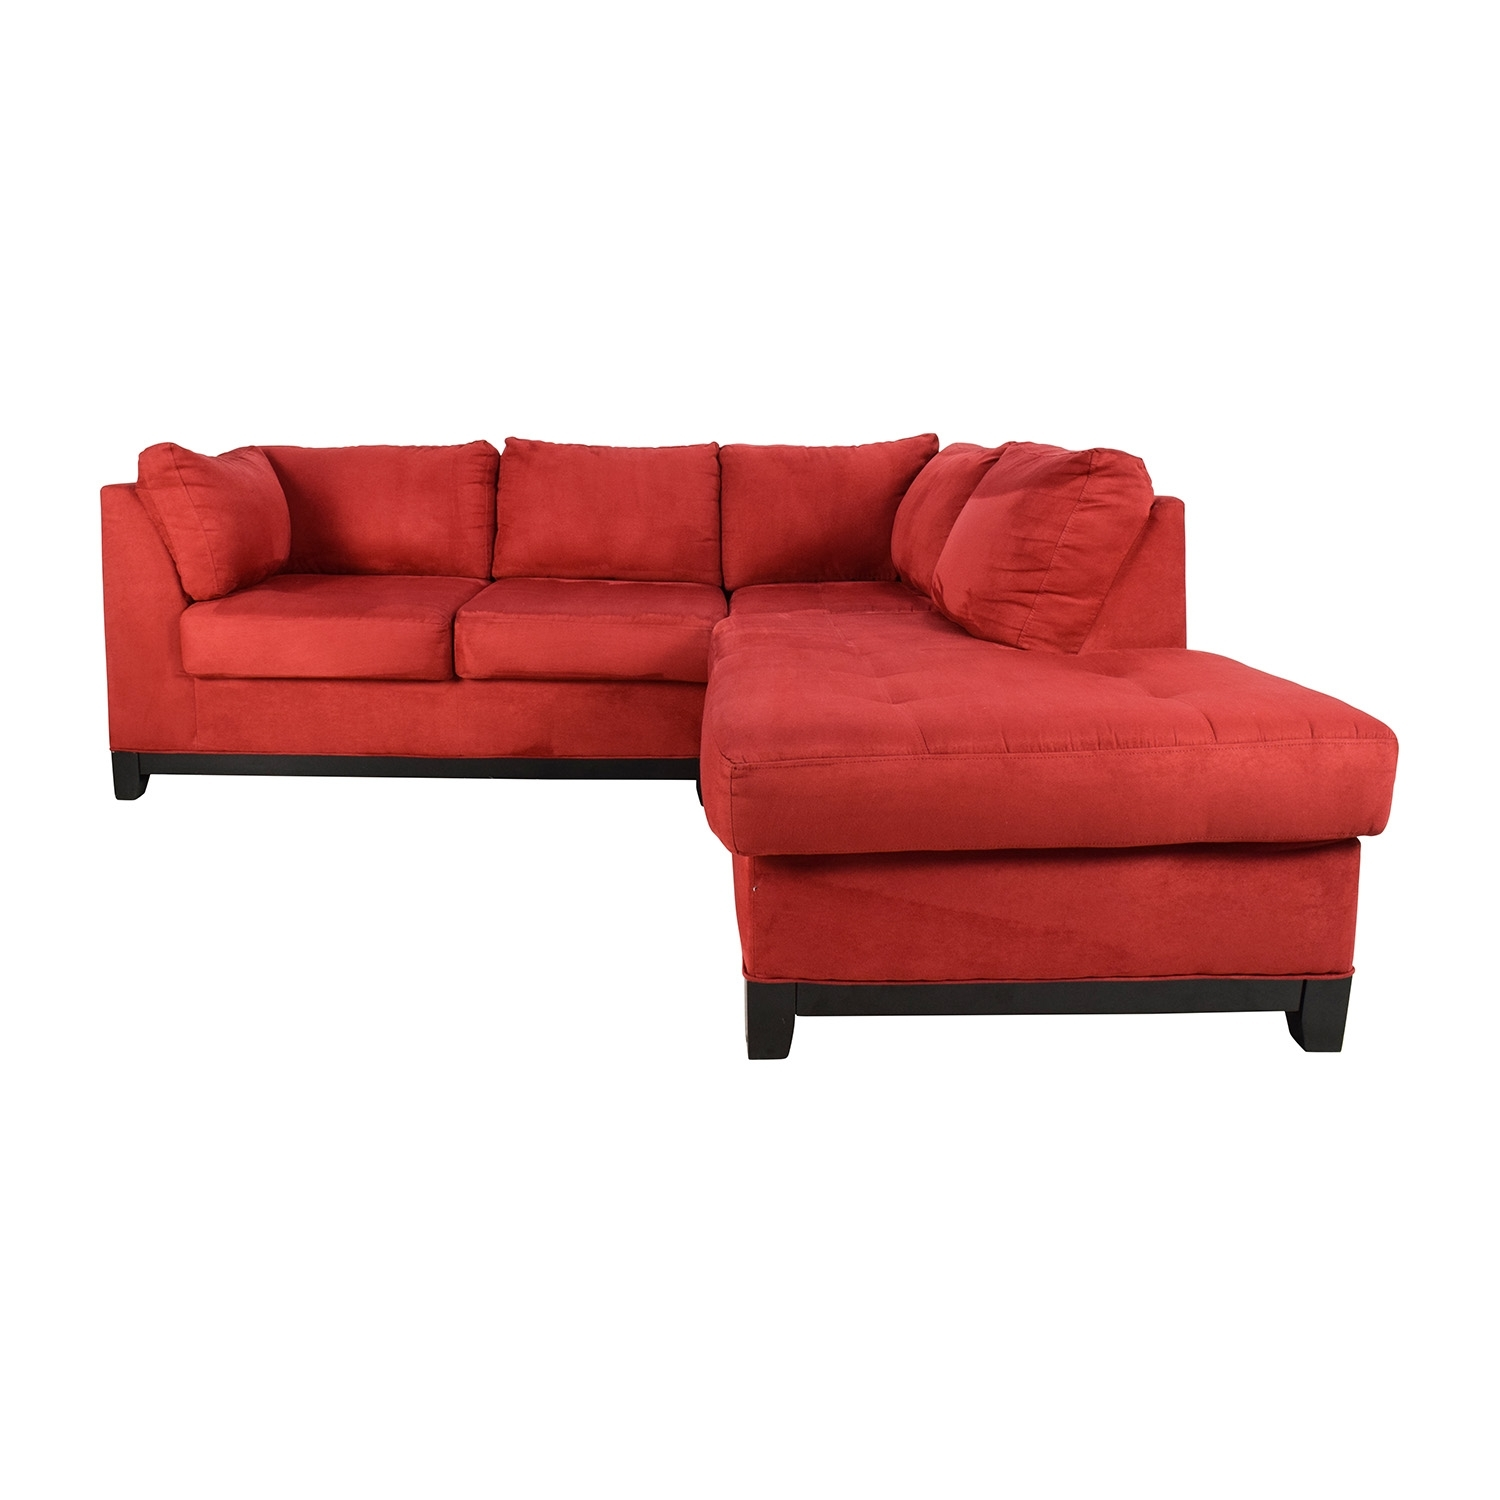 67% Off – Raymour And Flanigan Raymour & Flanigan Zella Red Throughout Sectional Sofas At Raymour And Flanigan (View 3 of 15)